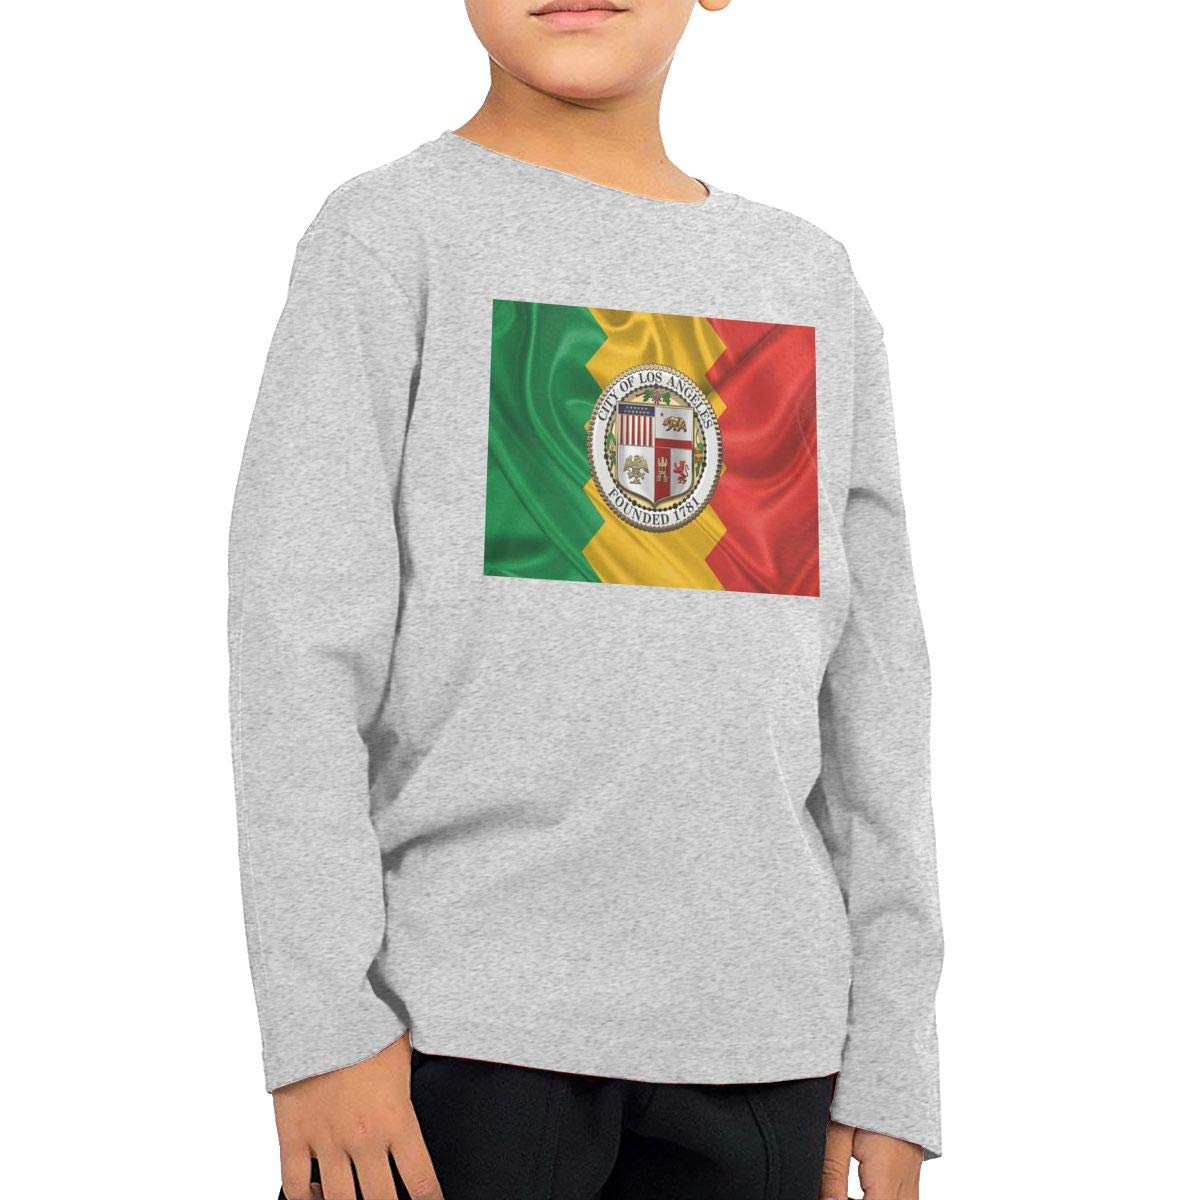 HADYKIDSLOVE Flag of Los Angeles City Kids T-Shirt Long Sleeve Boys Girls T-Shirt